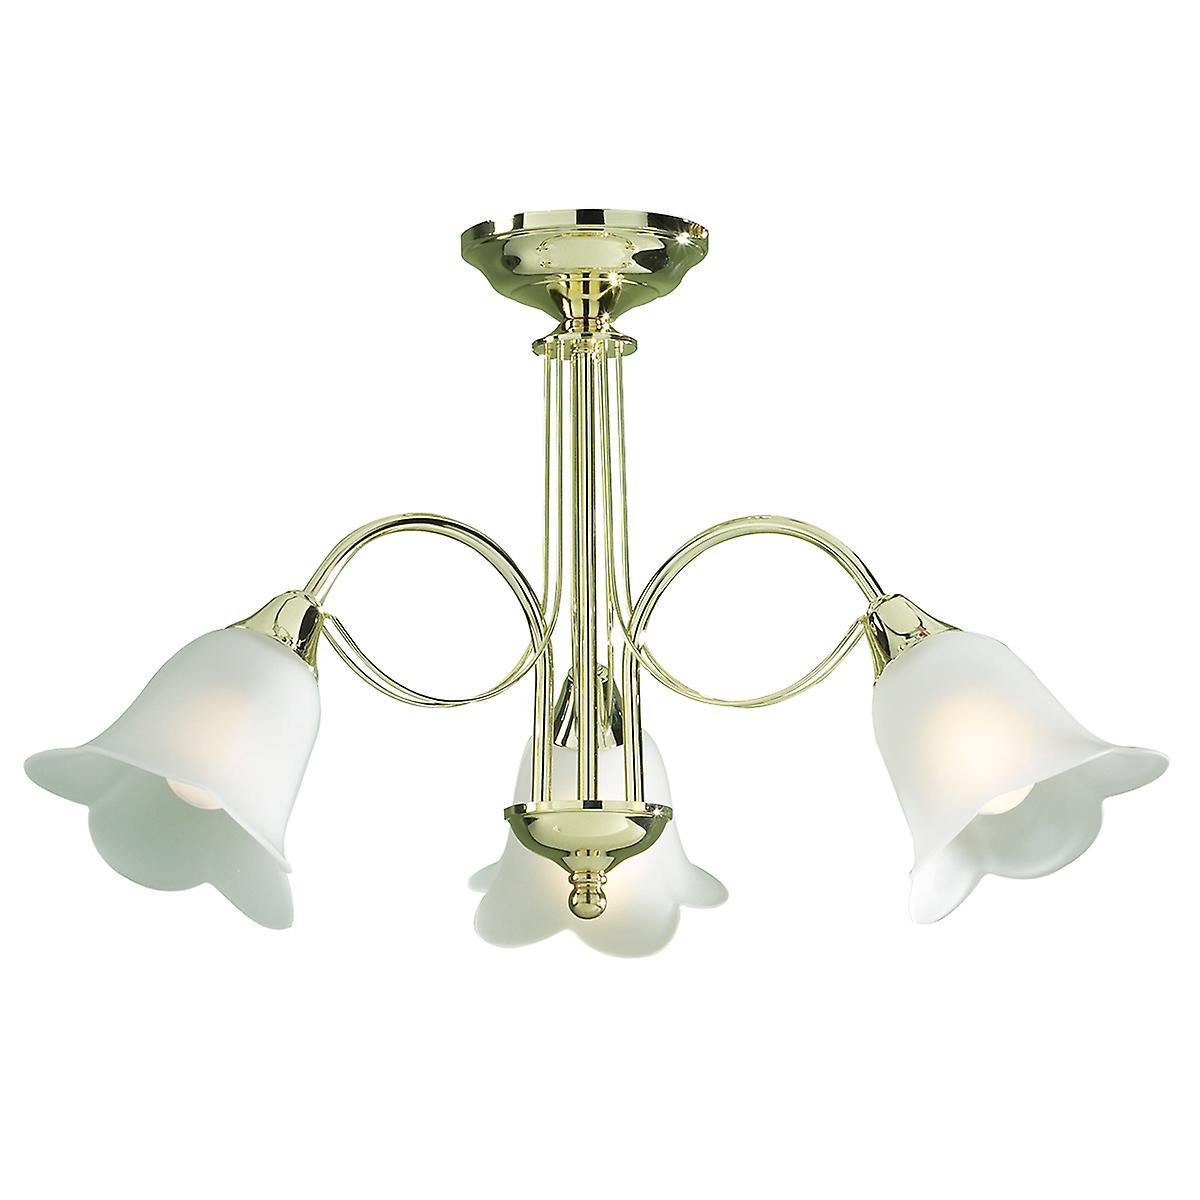 Dar DOU0340 Doublet Traditional Semi-Flush Ceiling 3 Light With Opaque Glass